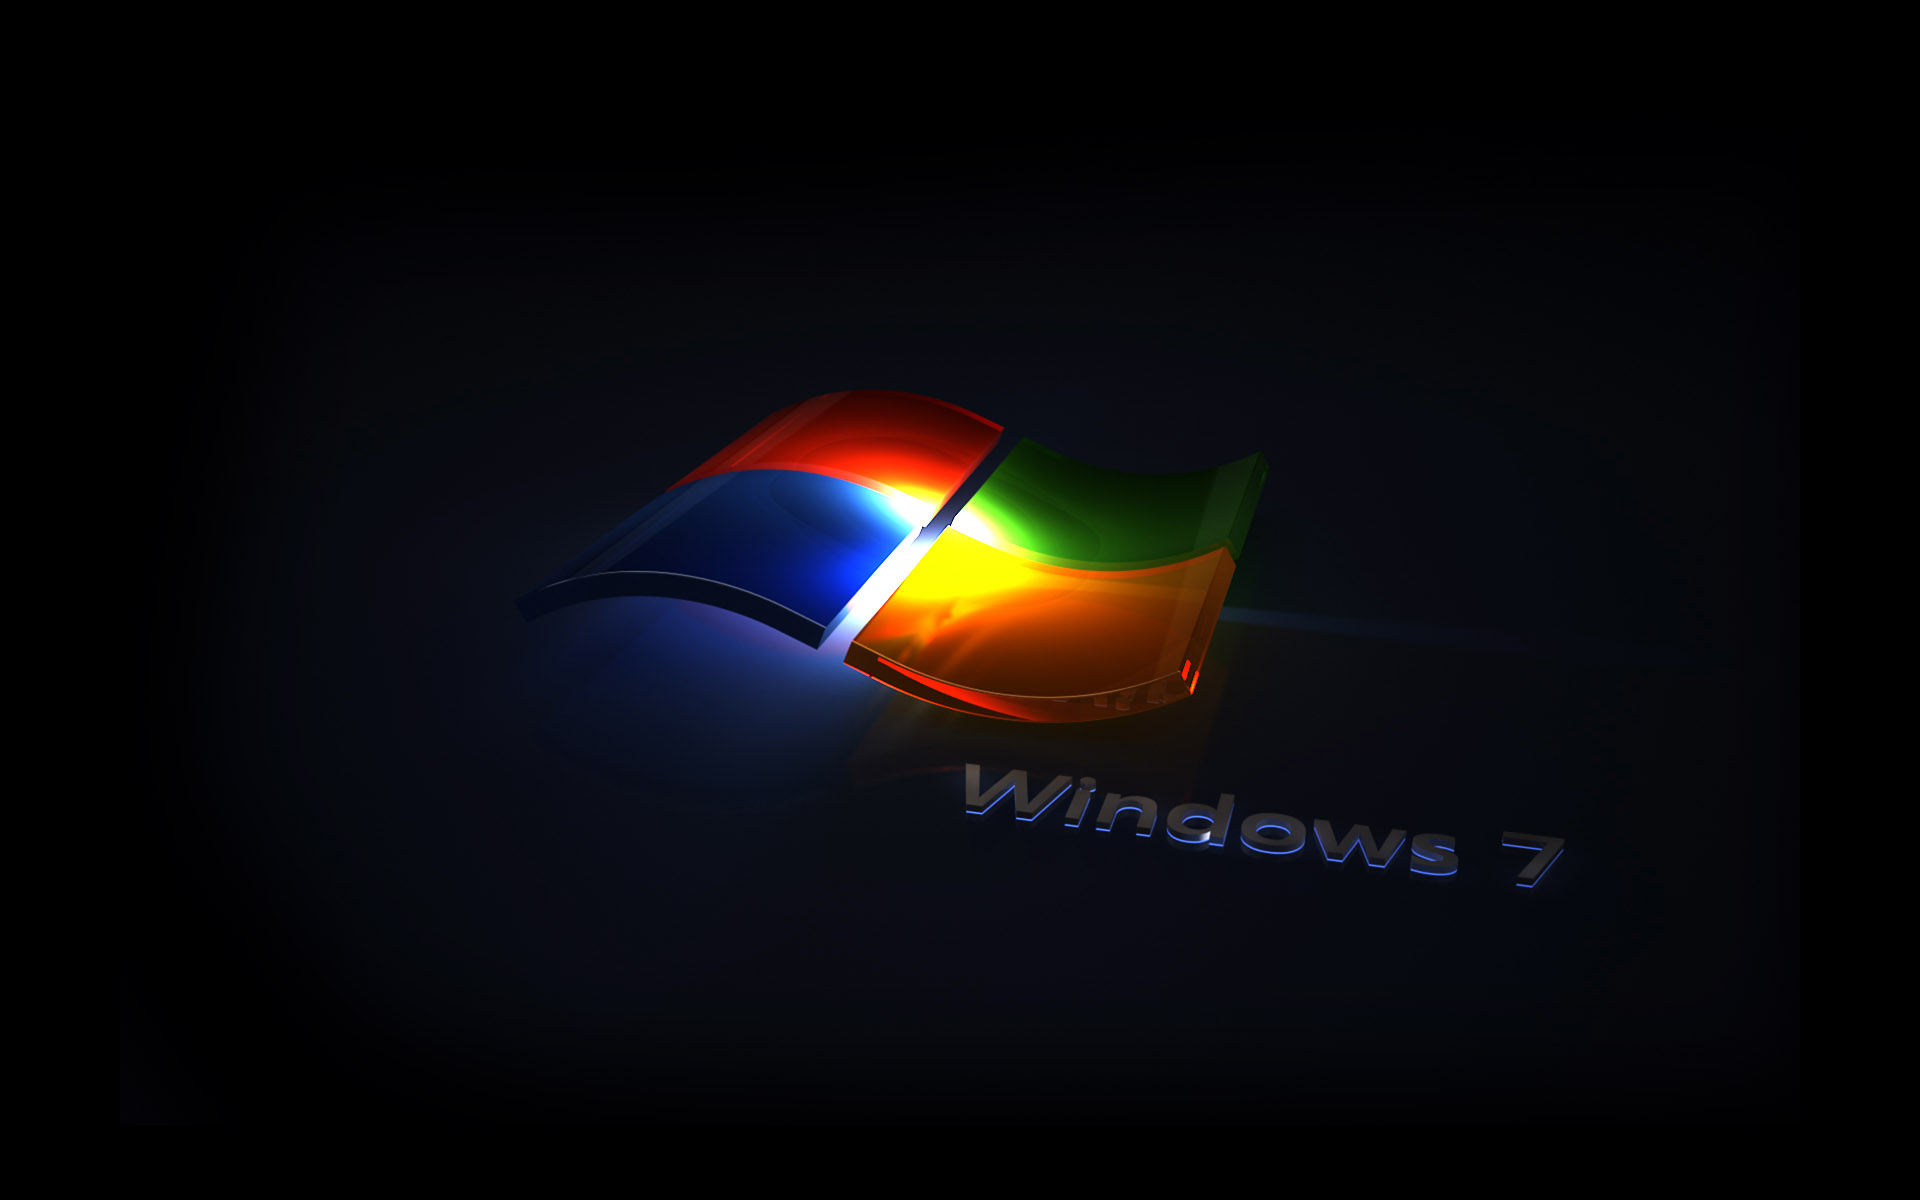 Windows 7 Ultimate Wallpapers Free Download Sf Wallpaper